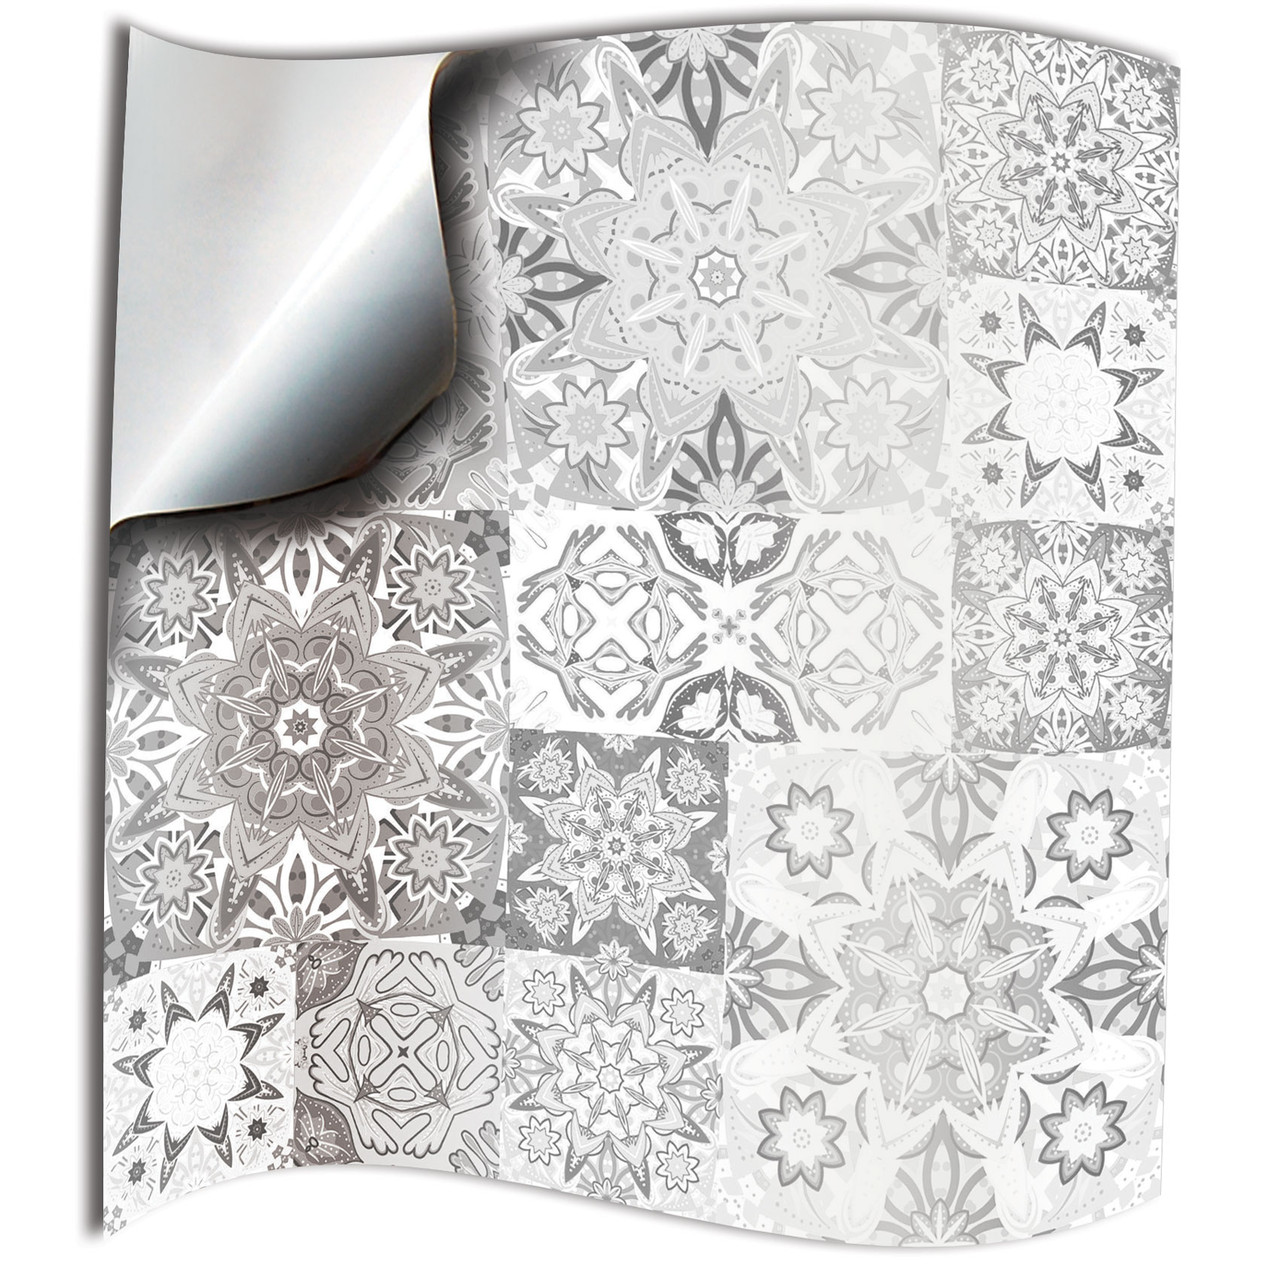 15cm square wall tile stickers